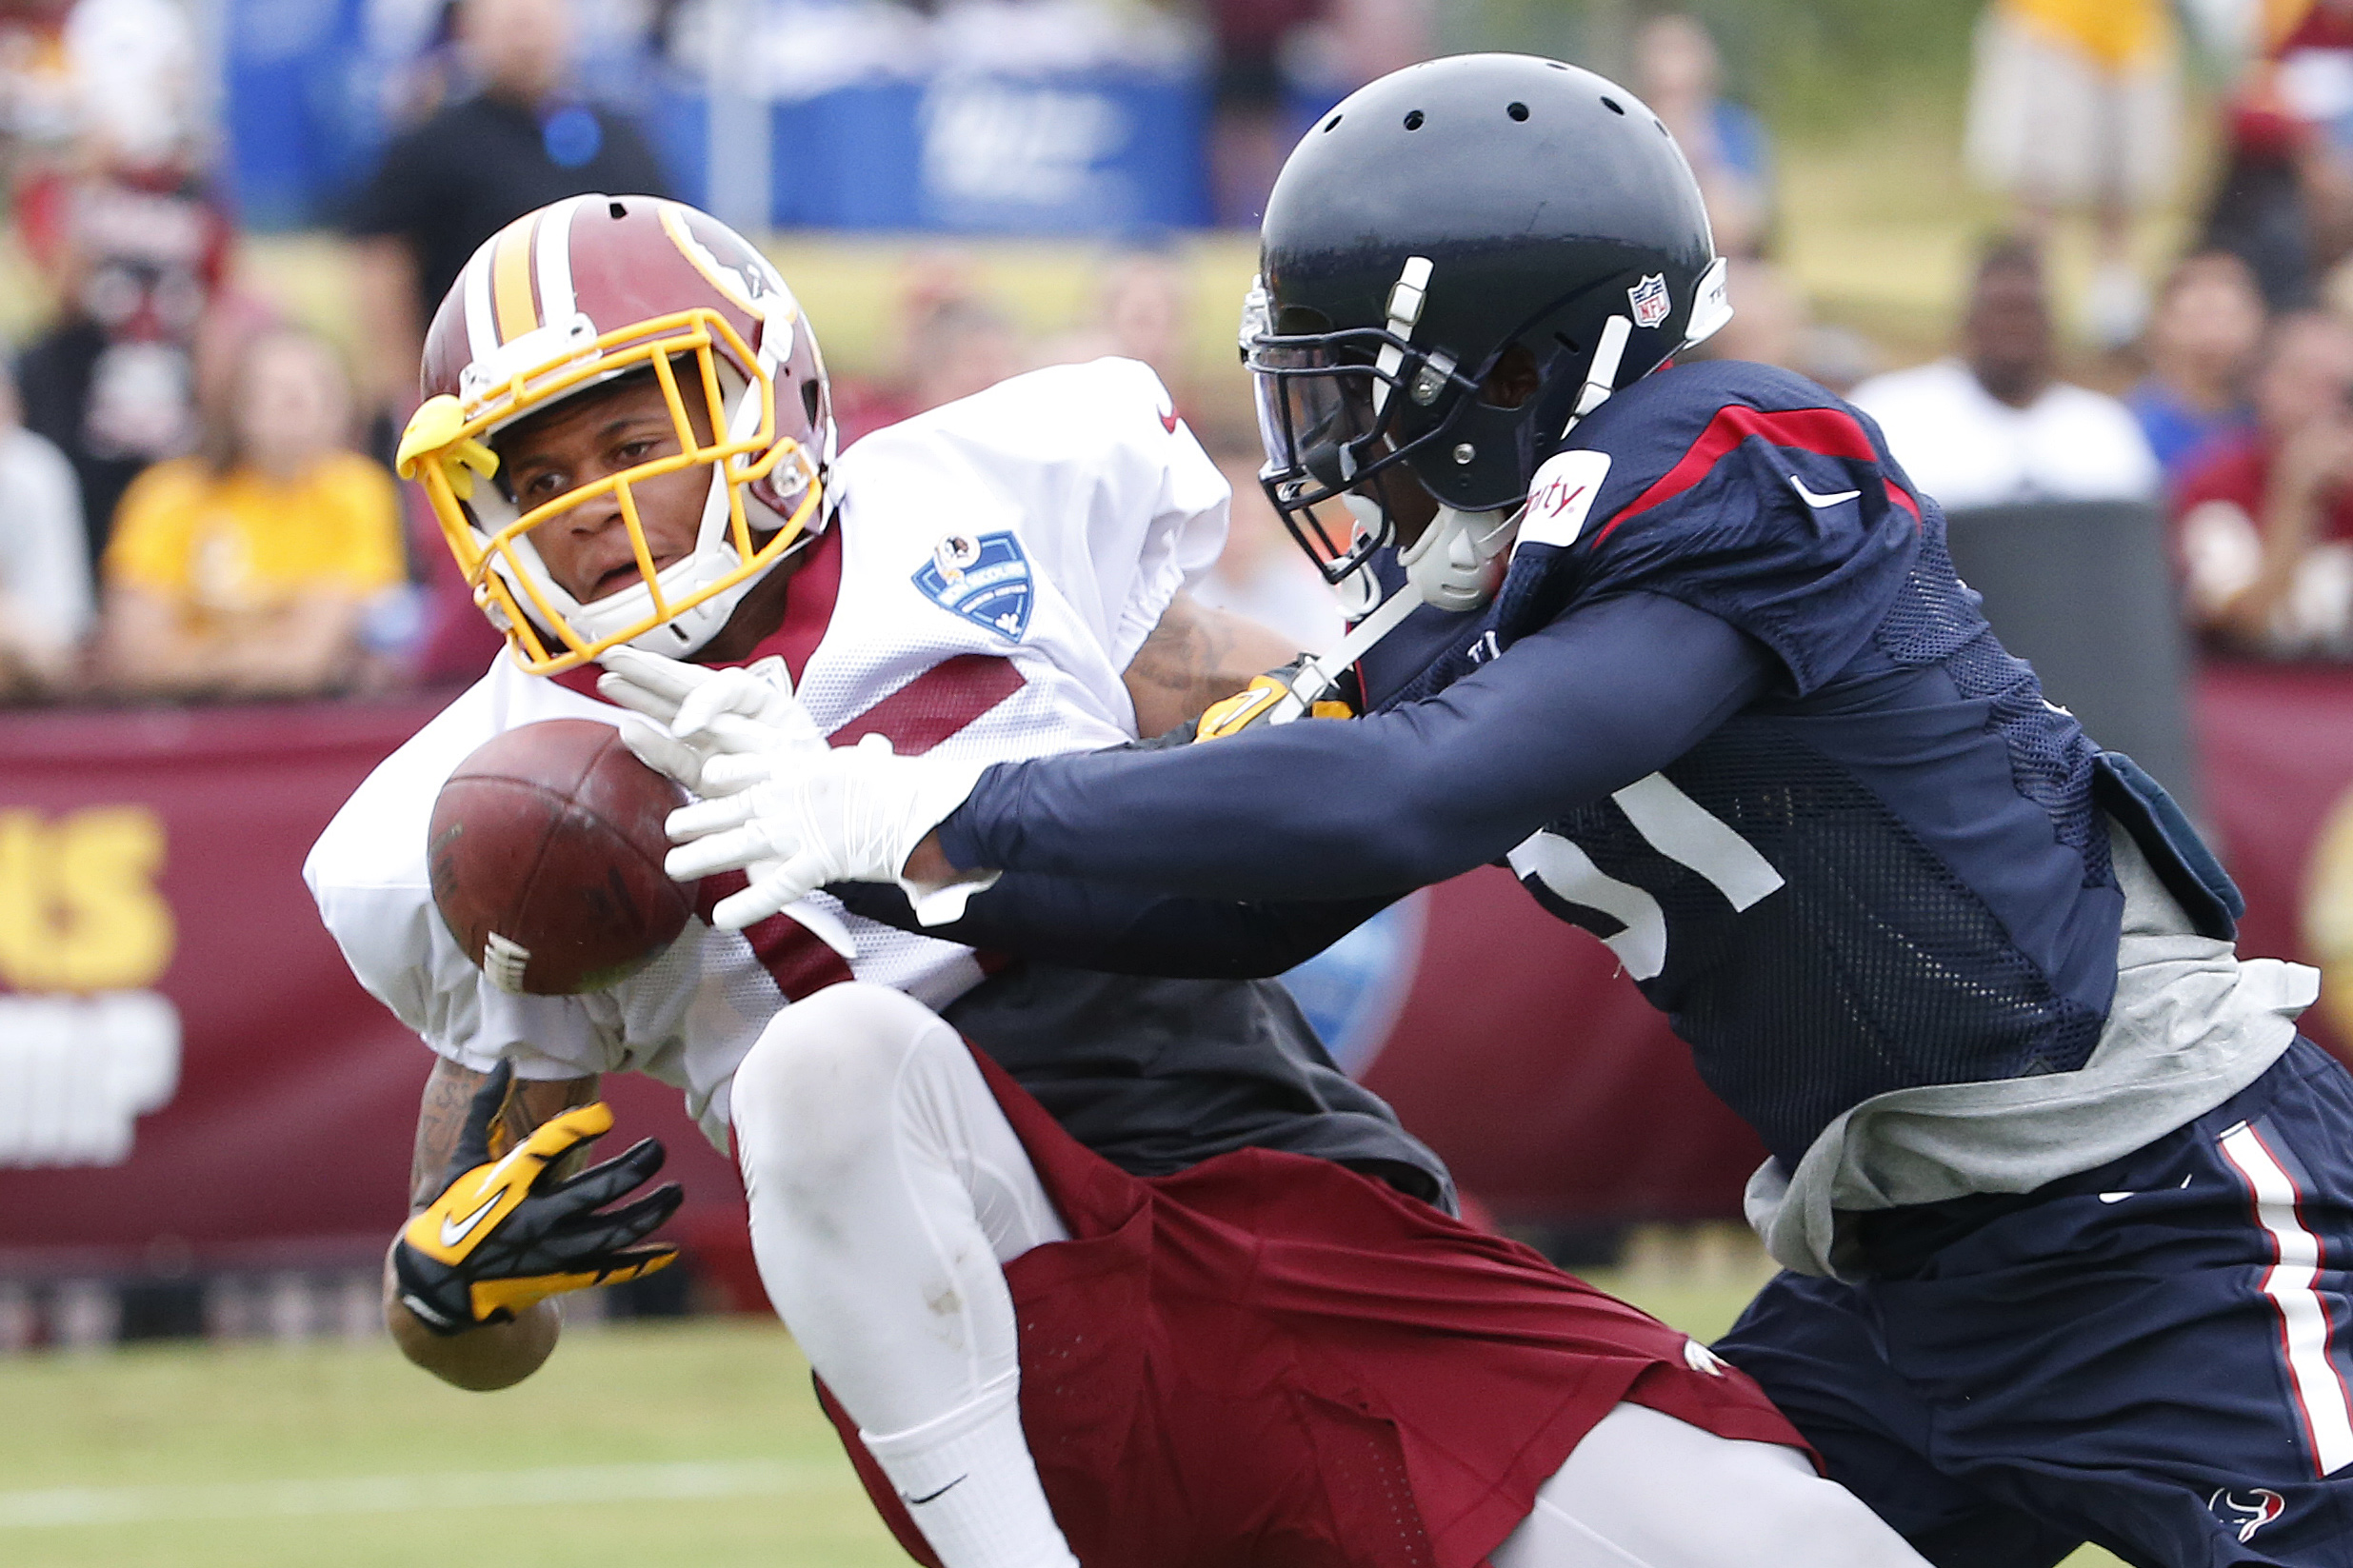 Aug 7, 2015; Richmond, VA, USA; Washington Redskins wide receiver Colin Lockett (15) attempts to catch the ball in front of Houston Texans defensive back Charles James (31) during morning practice as part of day eight of training camp at Bon Secours Washington Redskins Training Center. Mandatory Credit: Amber Searls-USA TODAY Sports